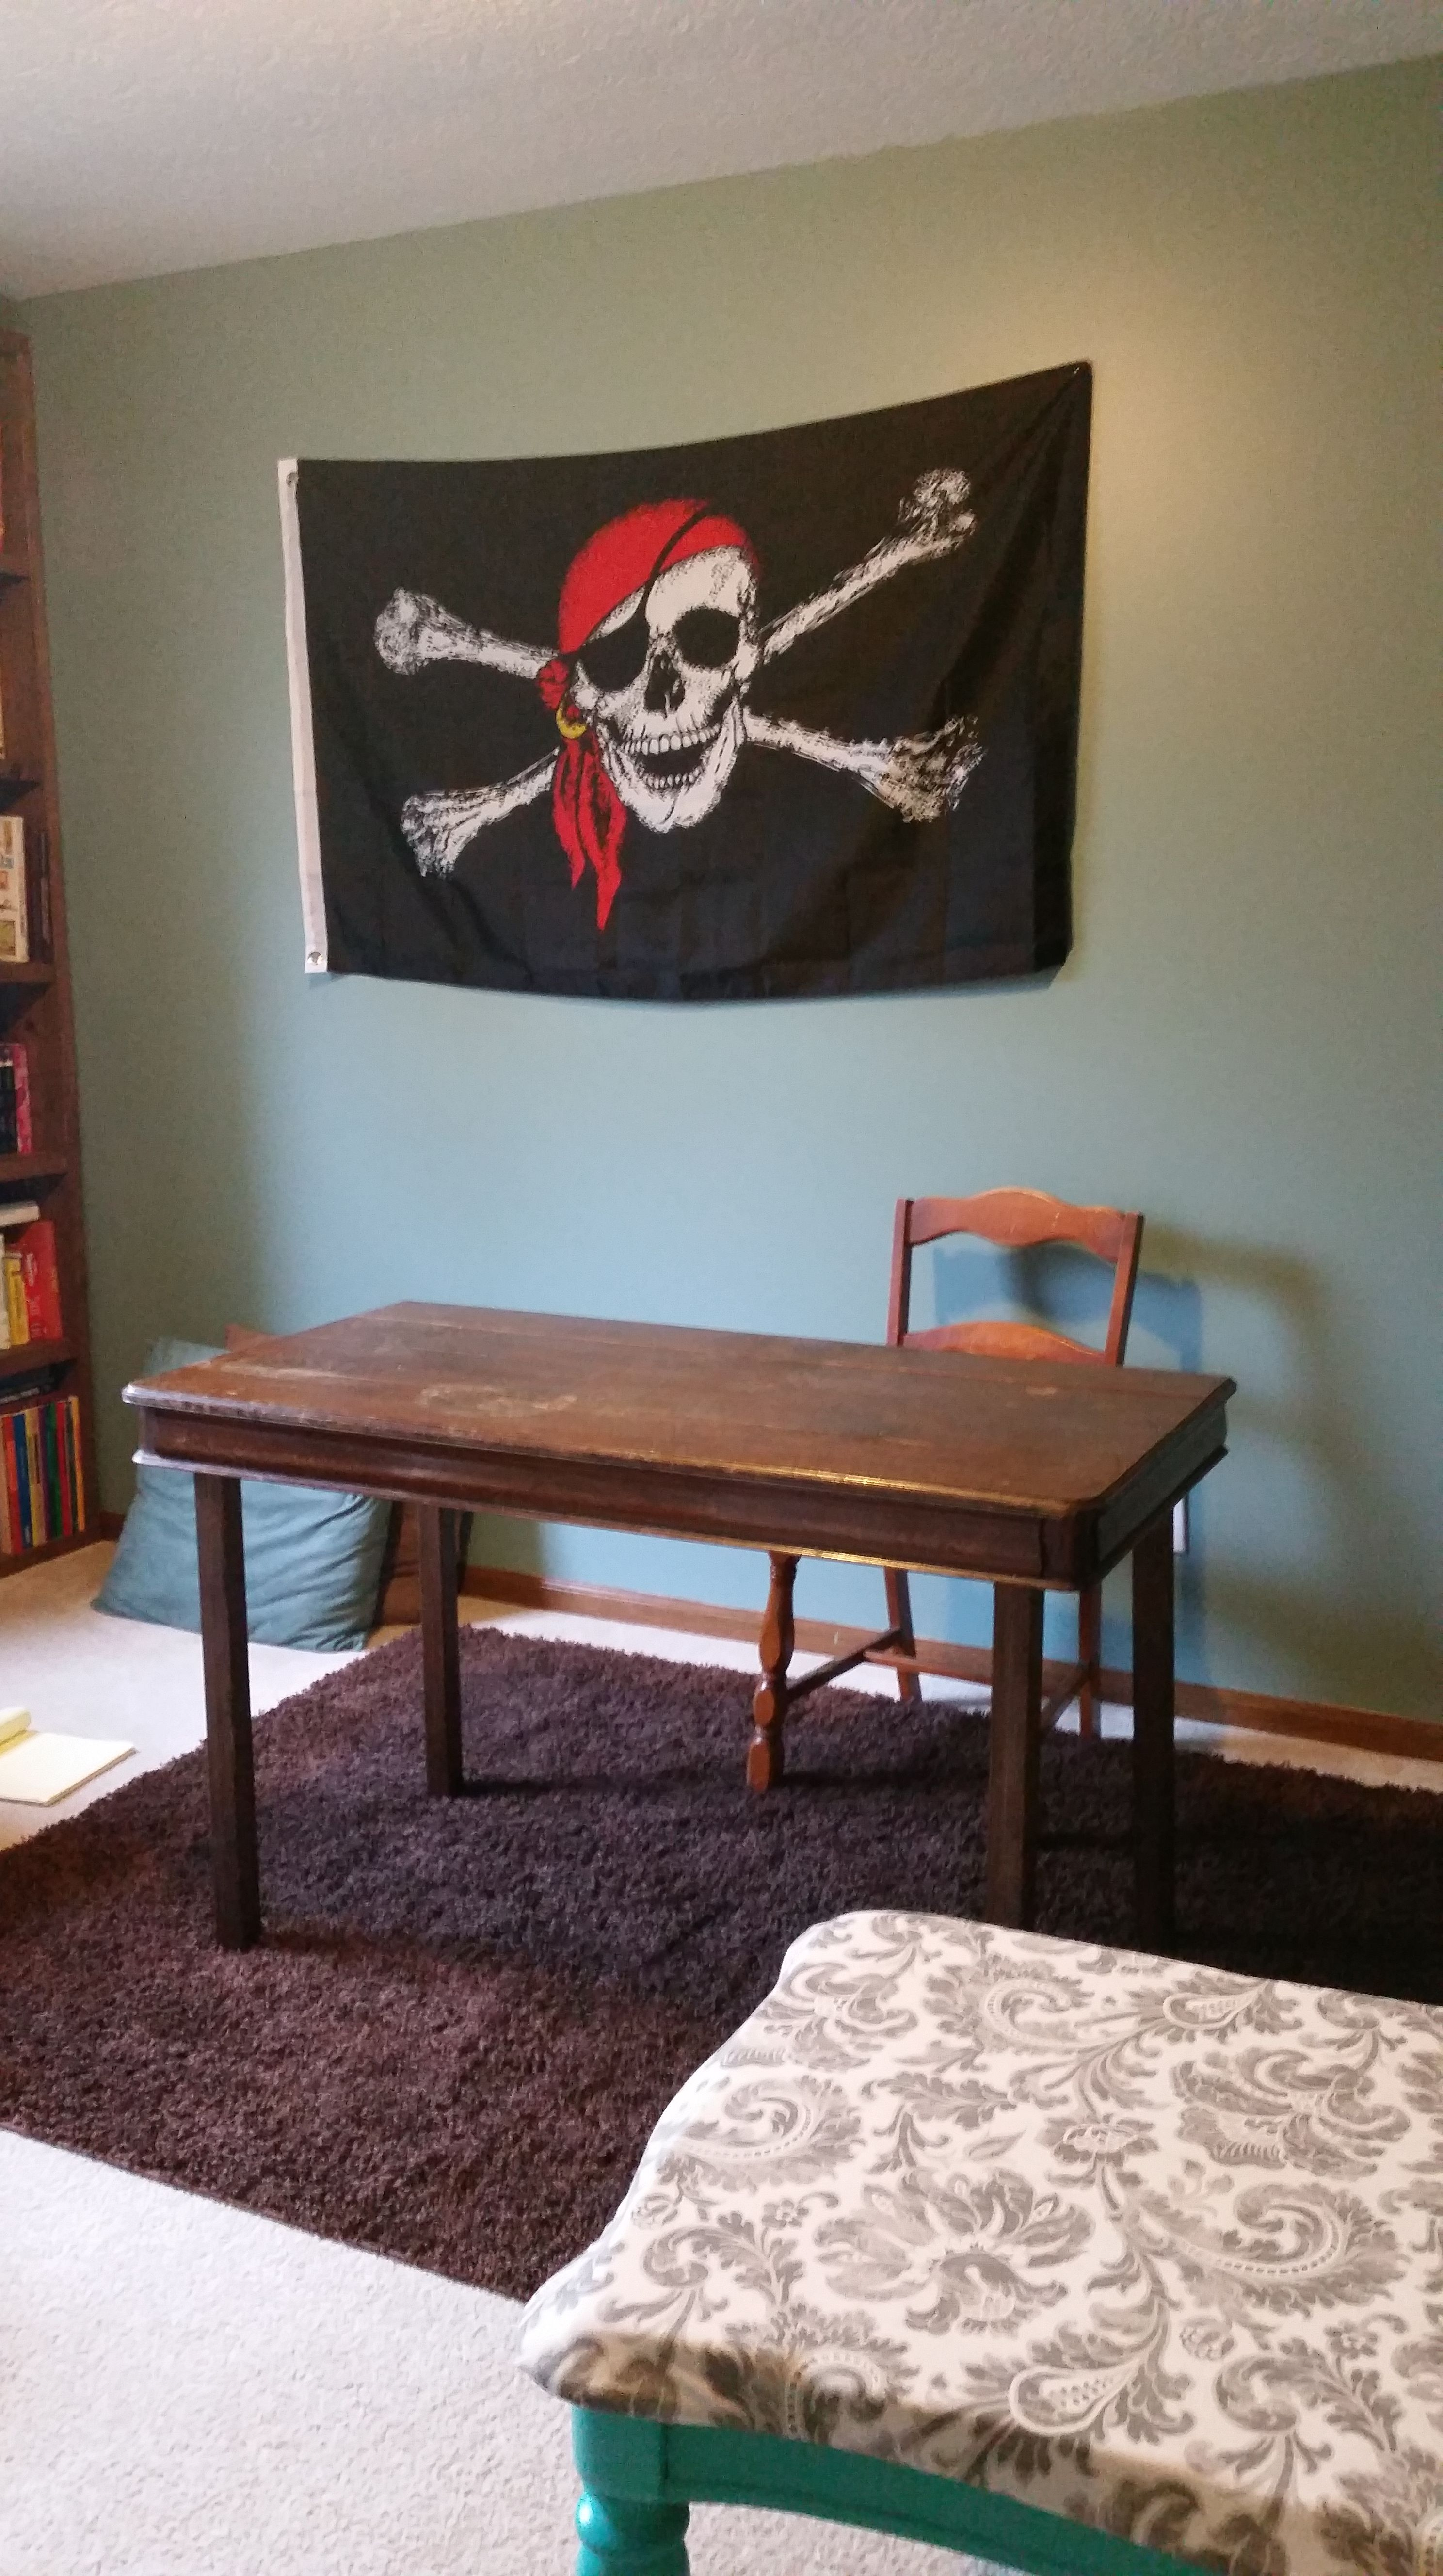 Creating a desk by repurposing items.